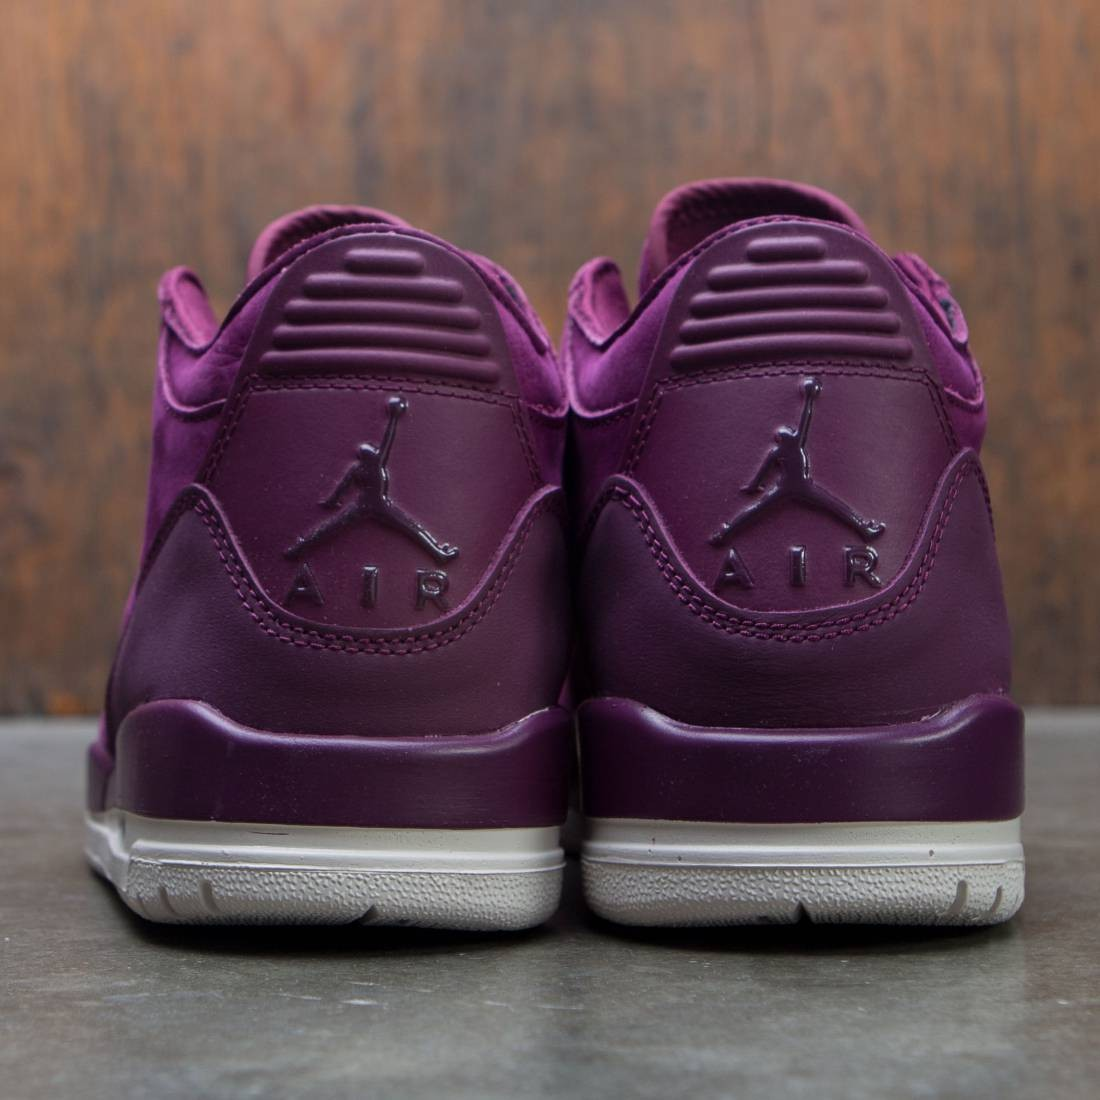 meilleur authentique 71c2e b77ae WMNS AIR JORDAN 3 RETRO SE Women (bordeaux / bordeaux-phantom)